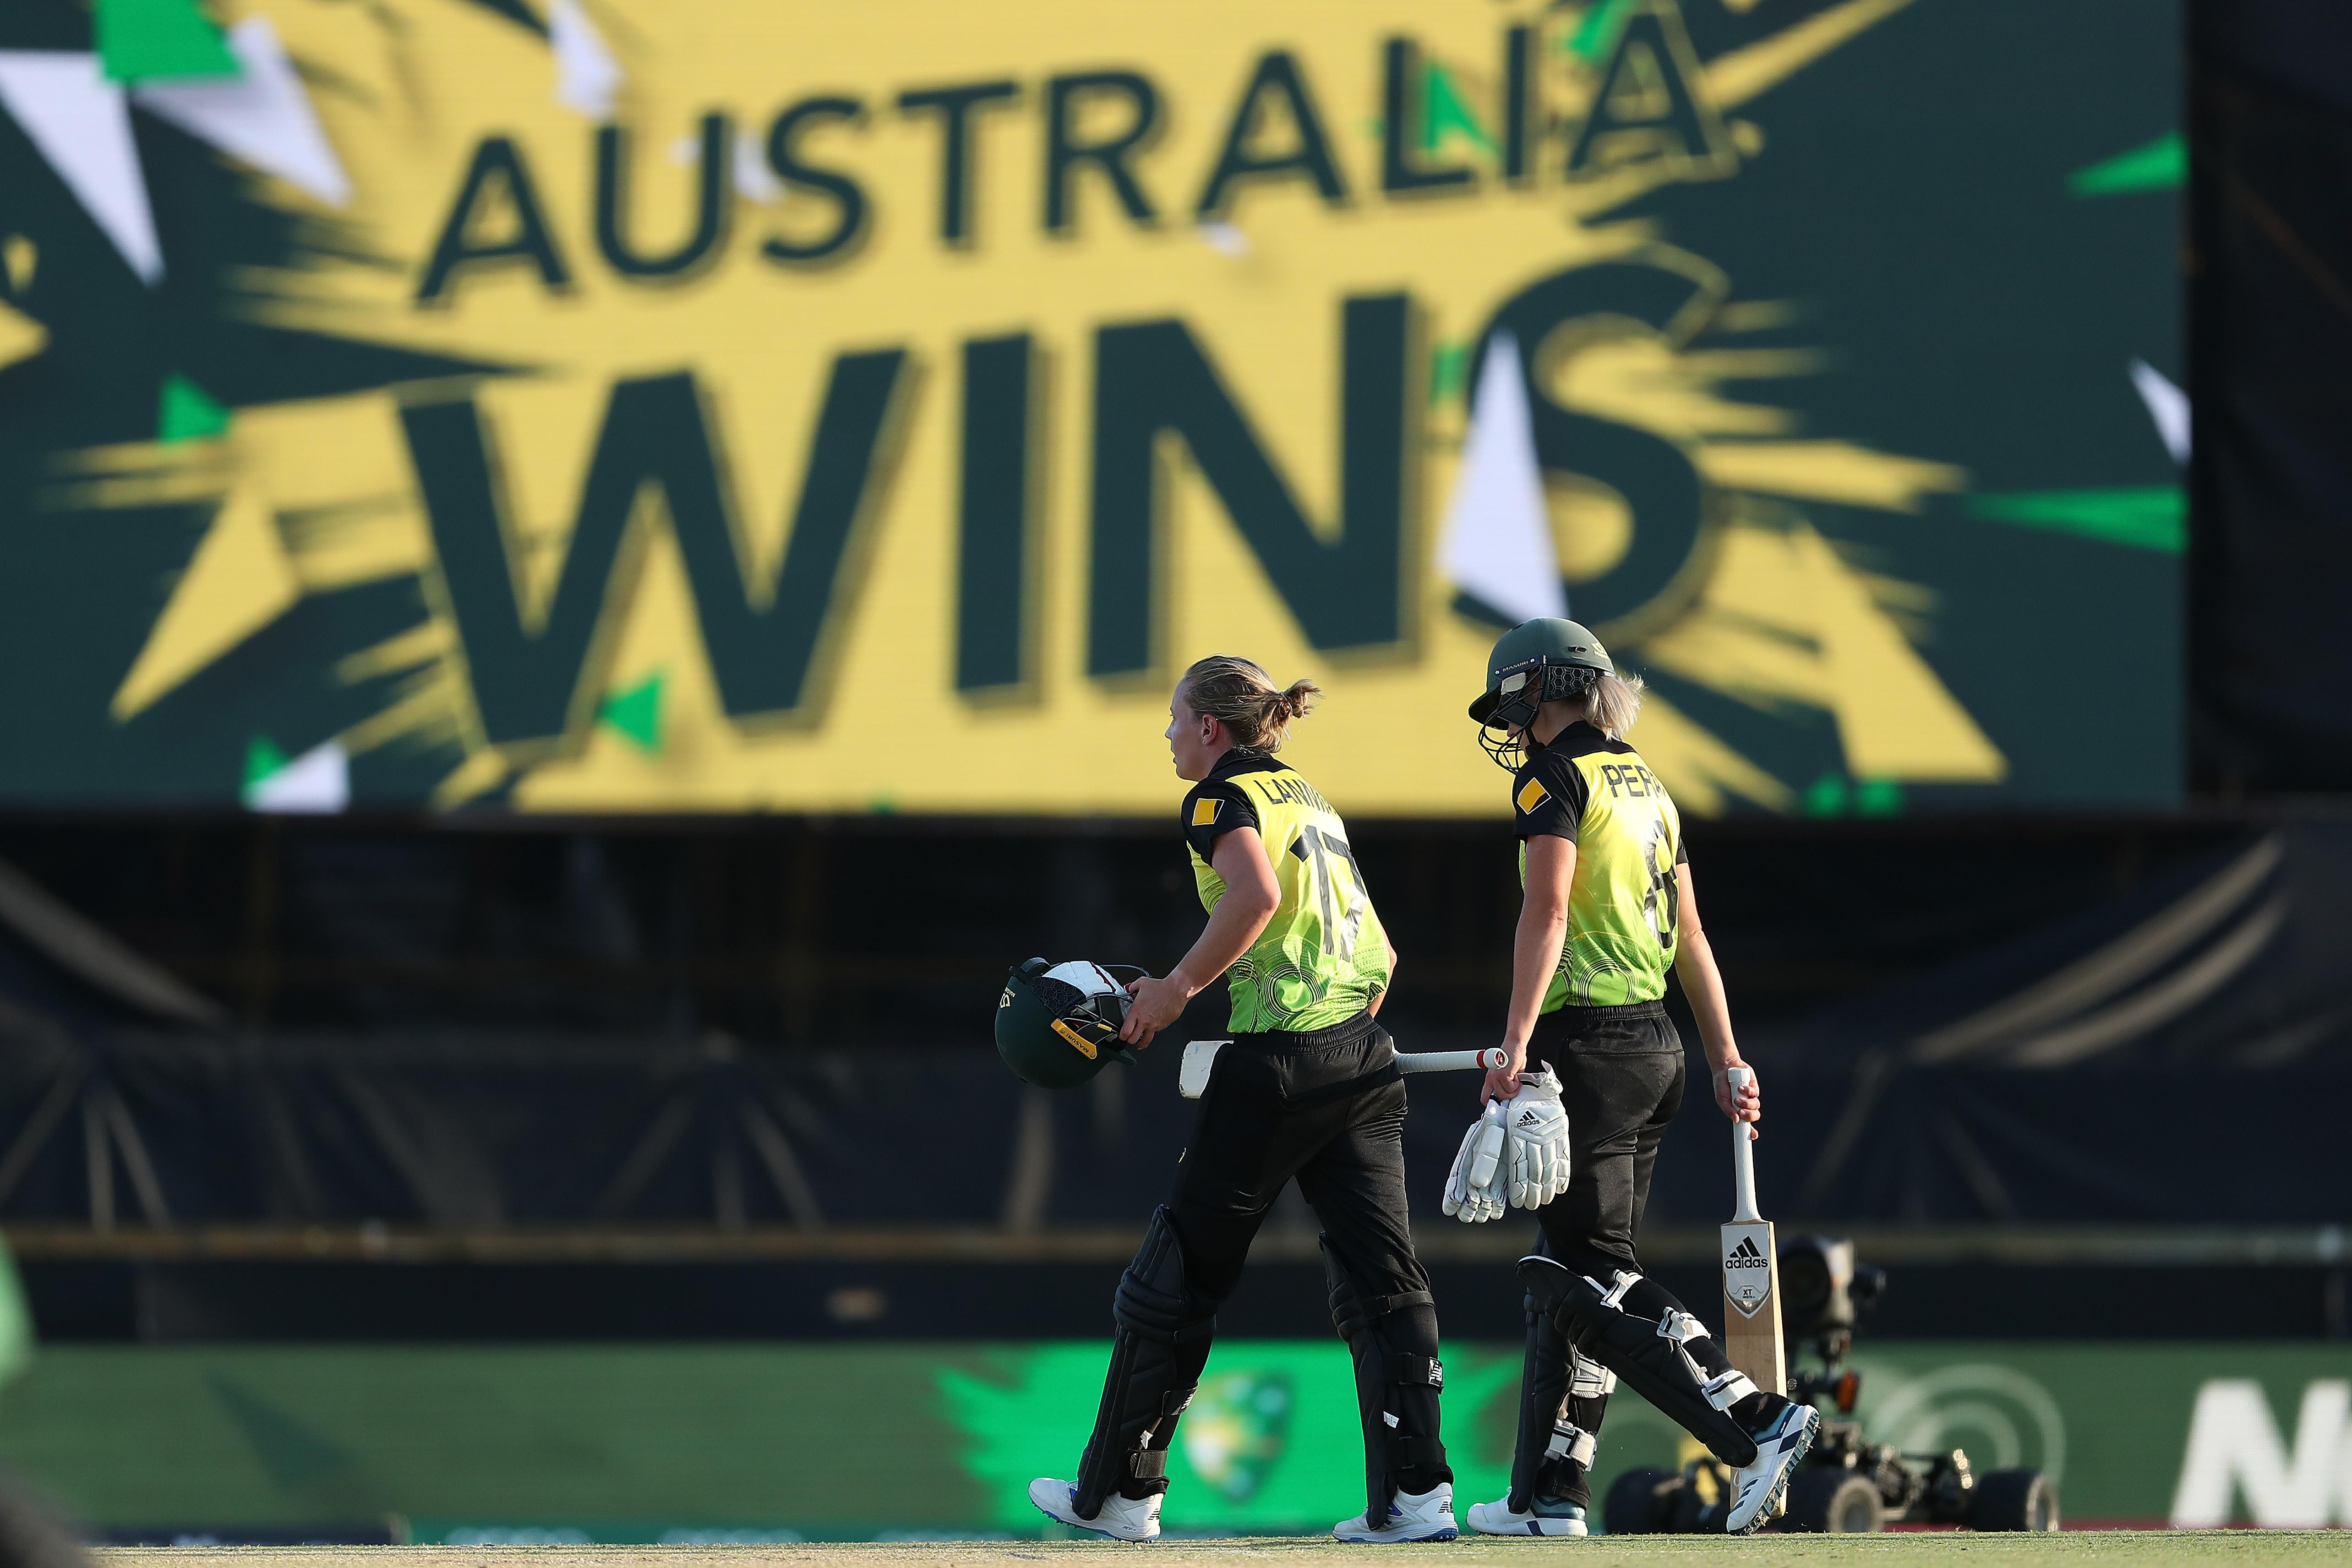 Palpable sigh of relief sweeps Australia as T20 World Cup hosts survive scare